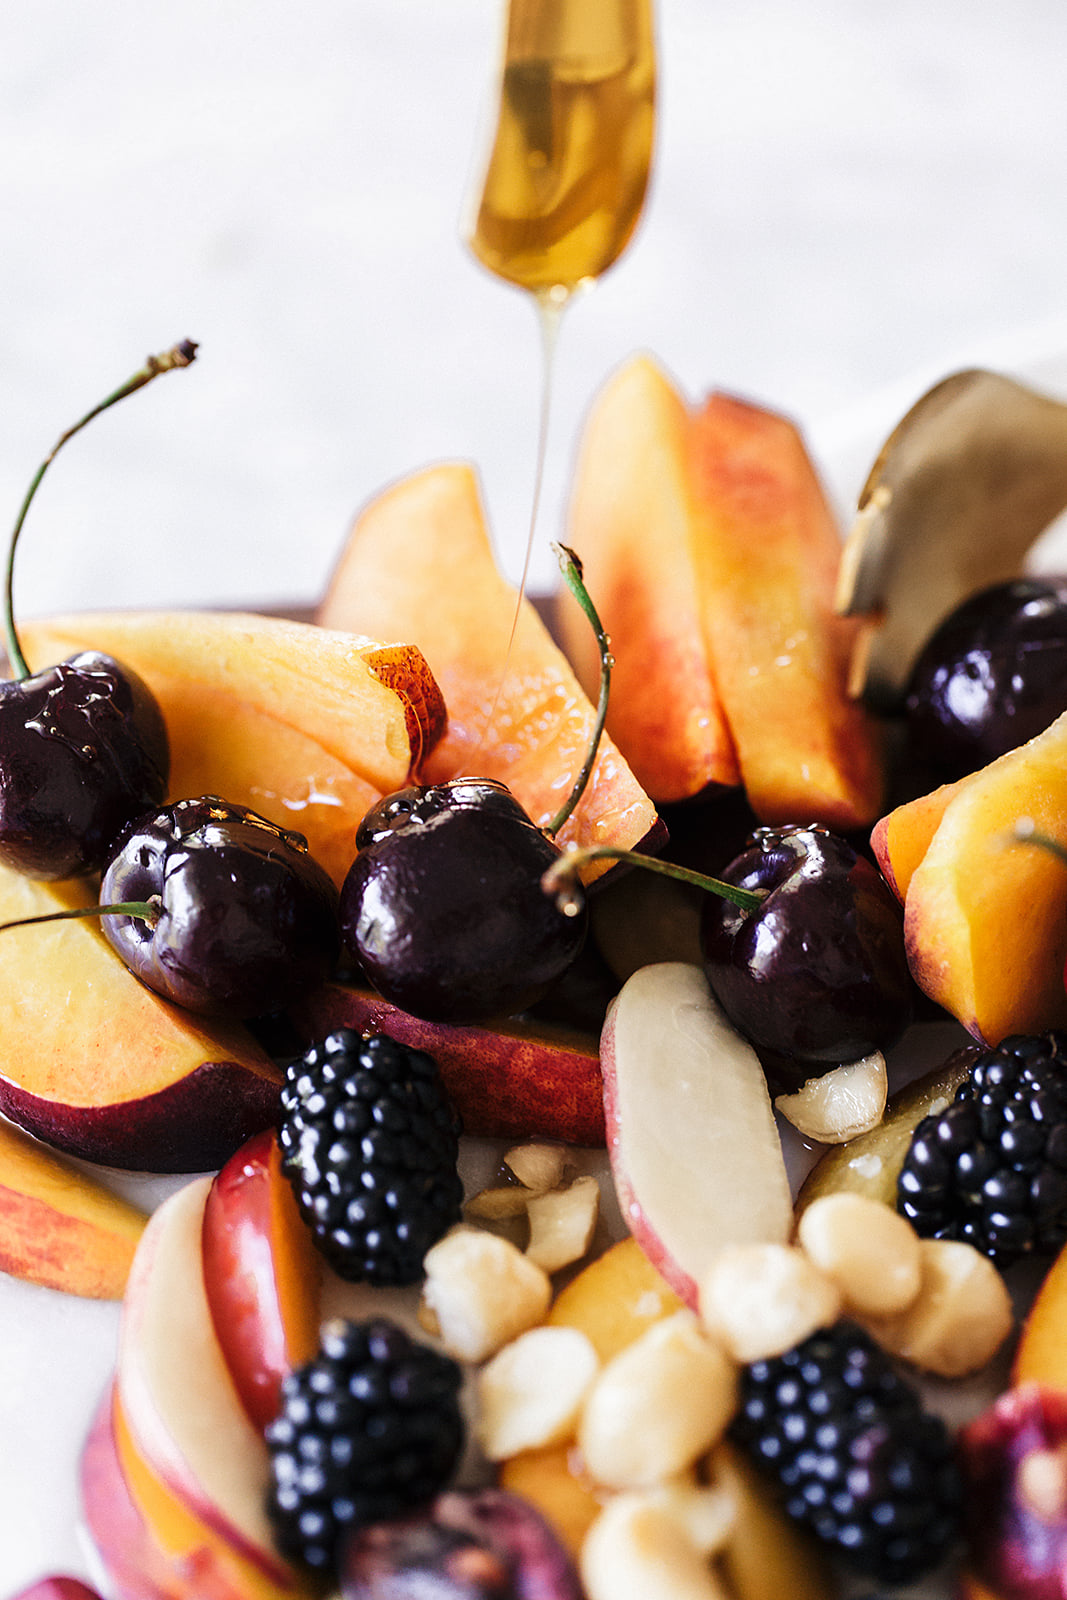 The health benefits of stone fruit